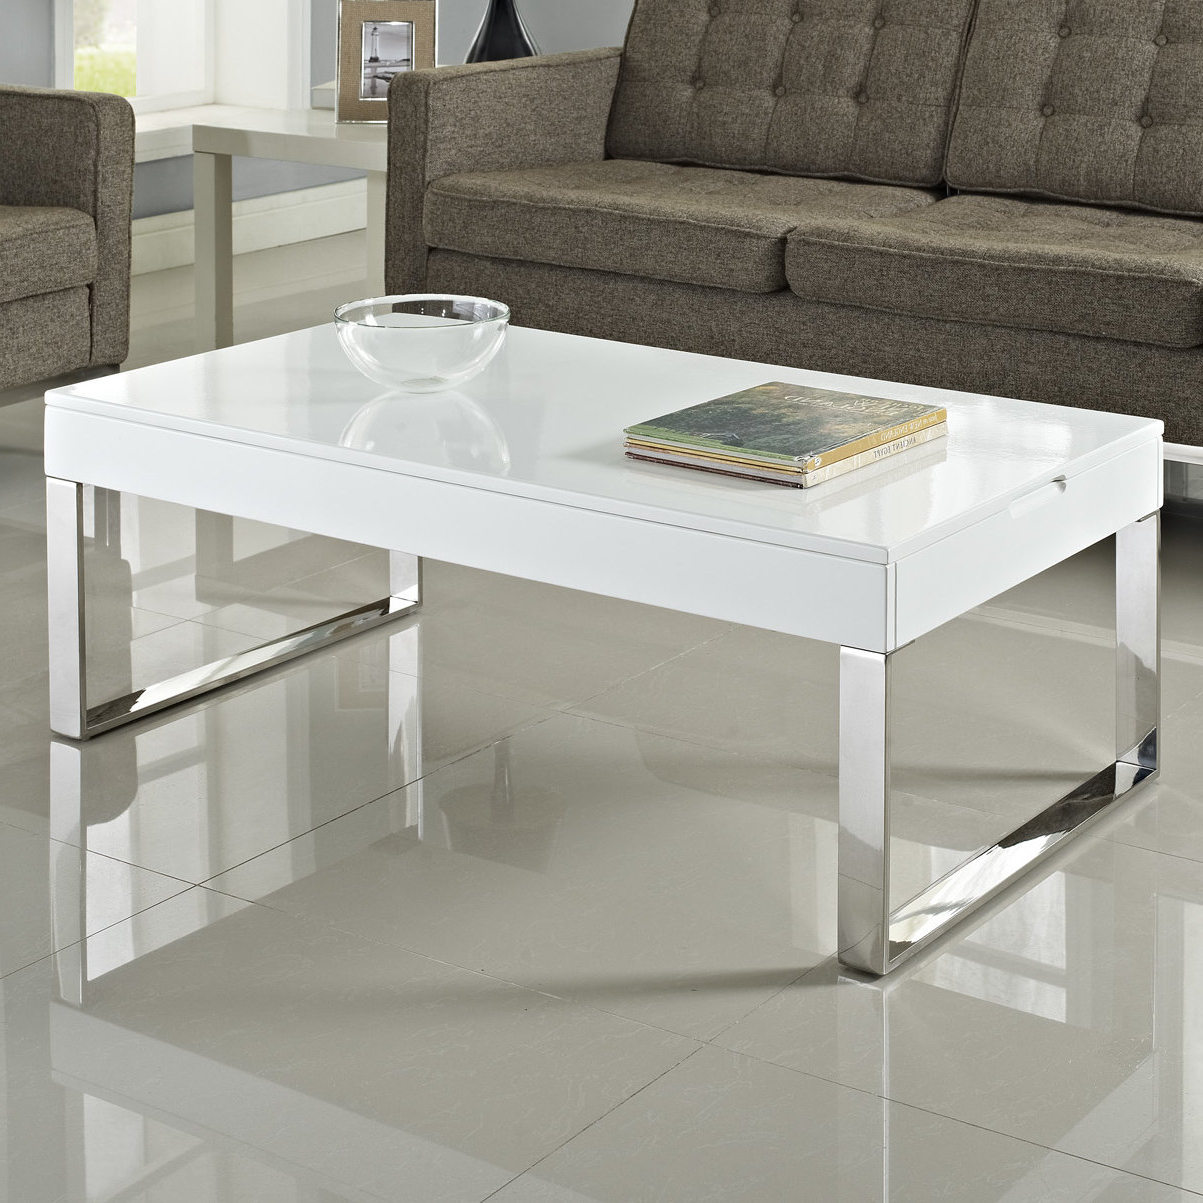 Stack Hi Gloss Wood Coffee Tables Pertaining To Current Modway Gloss Coffee Table & Reviews (View 12 of 20)